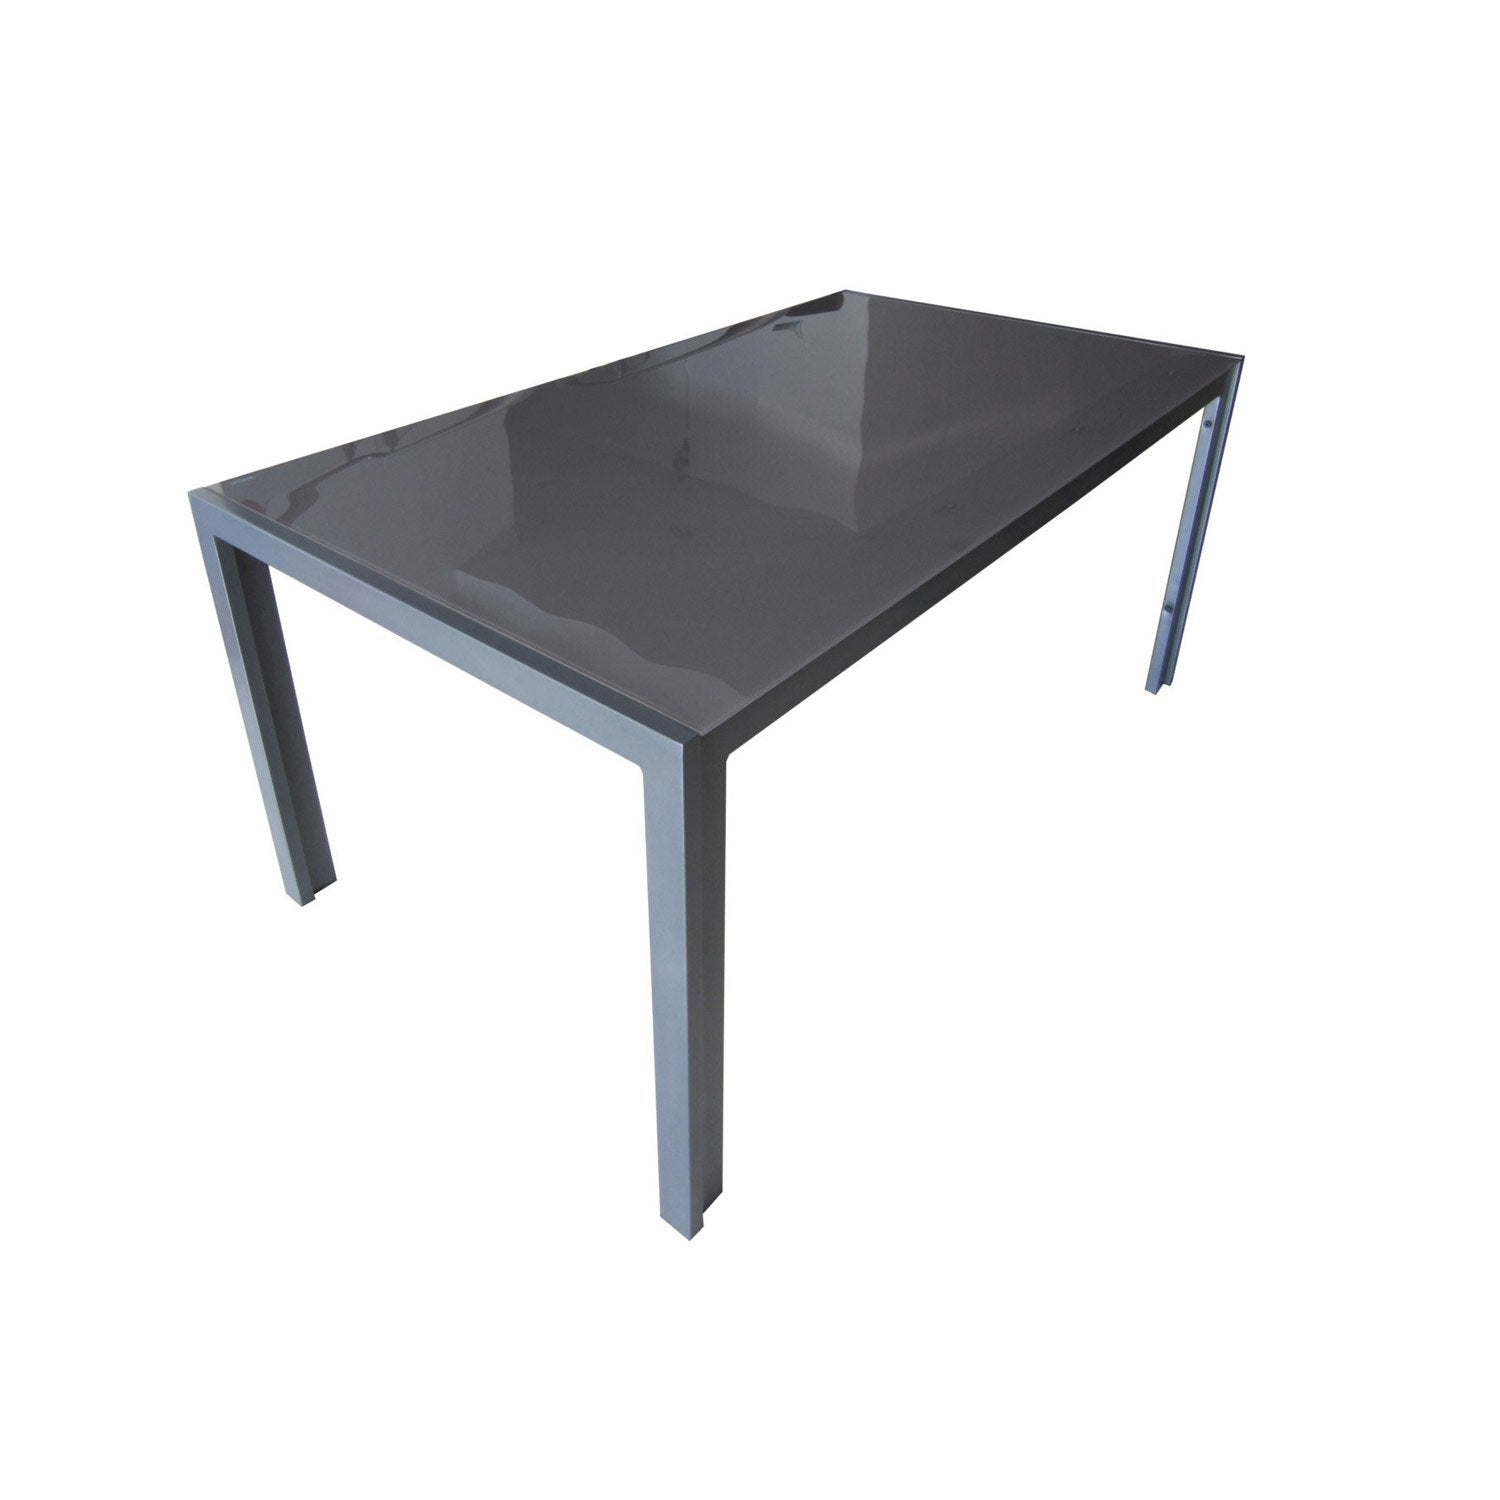 Table de jardin rectangulaire grey gris 6 personnes - Pied de table basse leroy merlin ...